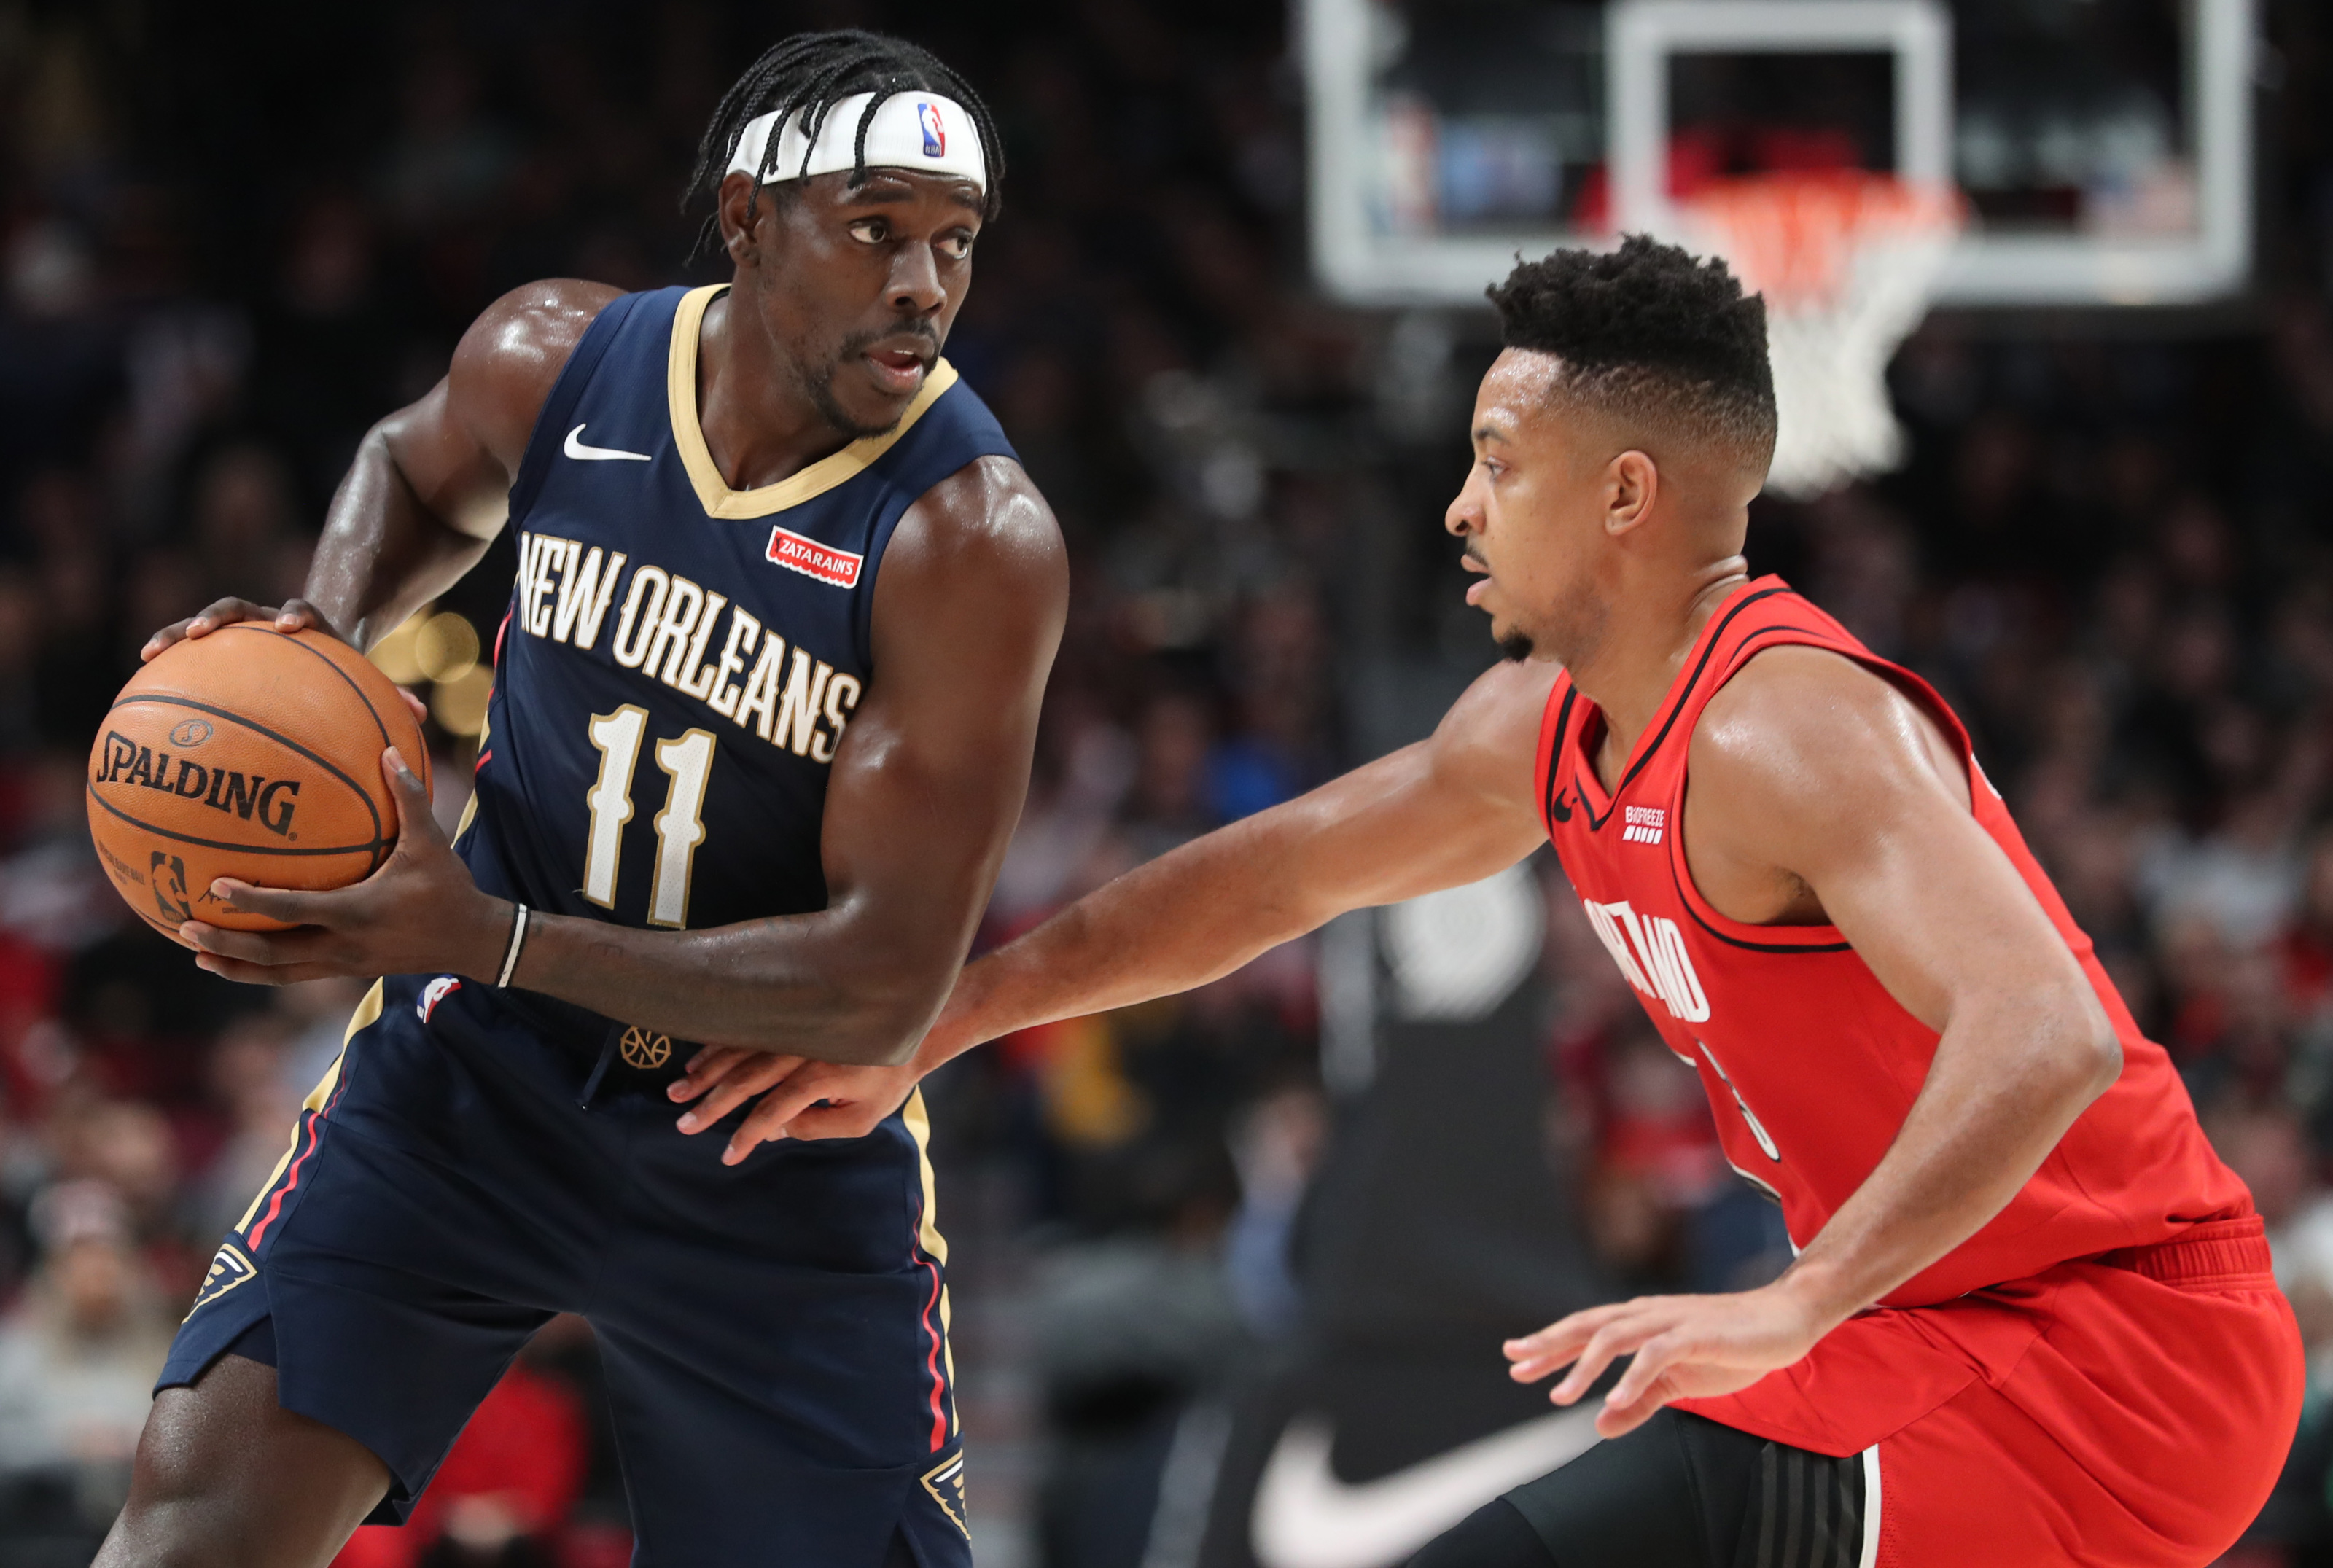 Trail Blazers look to make playoff push starting against Pelicans